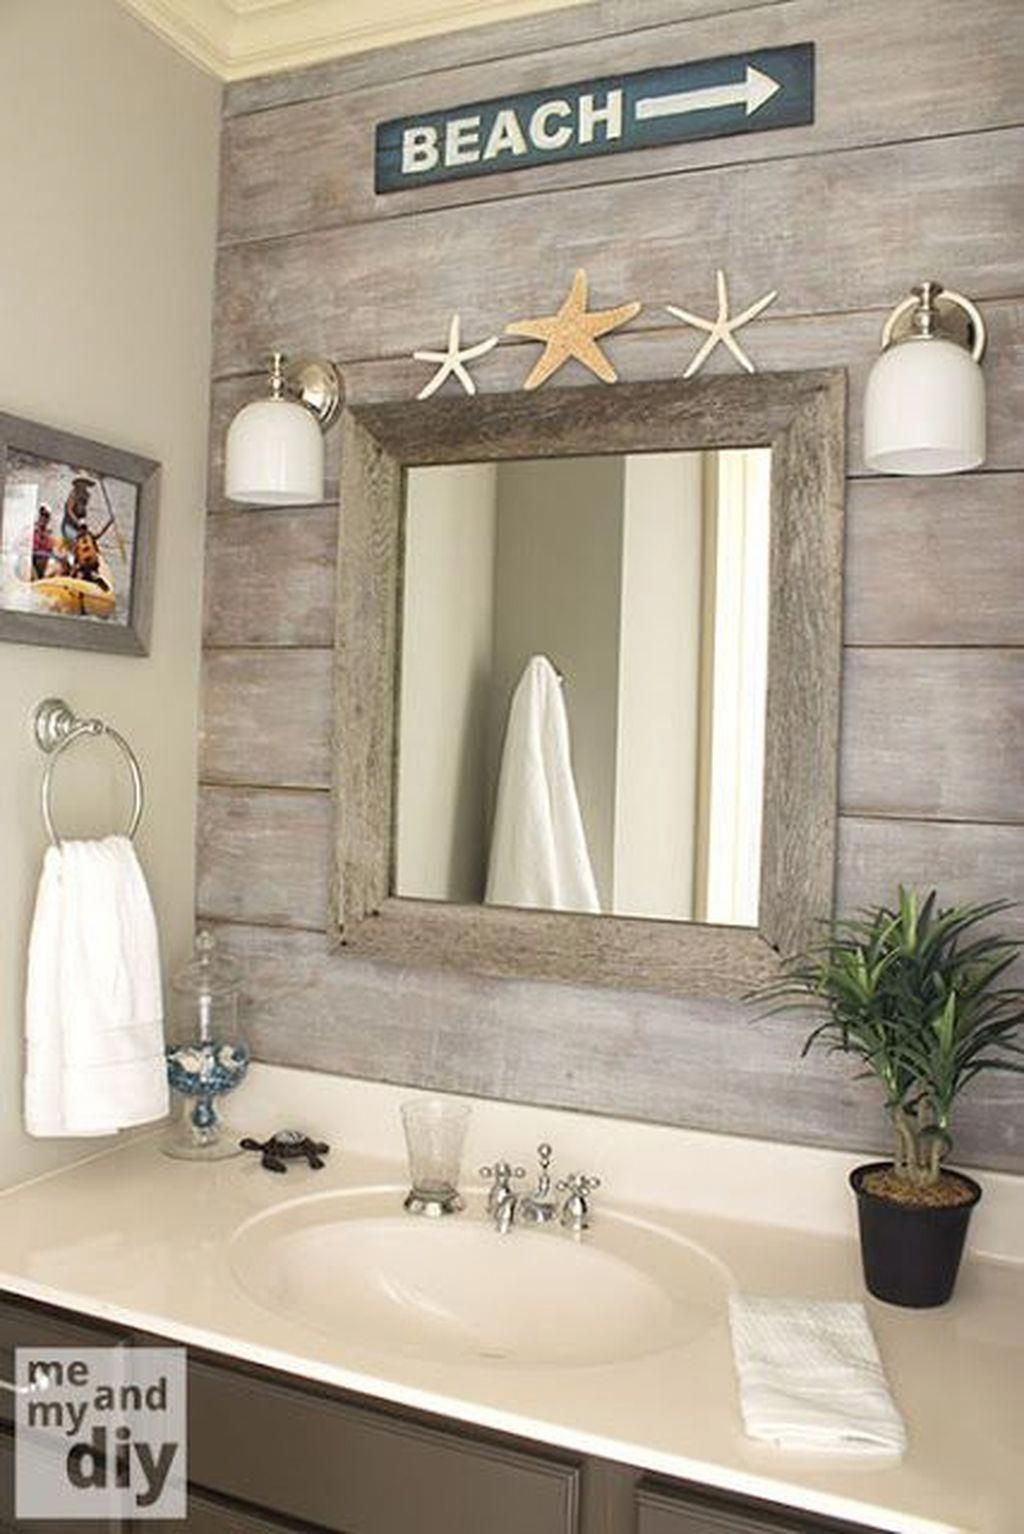 Wandbilder Fürs Bad Seek This Crucial Image In Order To Look At Today Guidance On Pretty Bathroom Decor #deko Fürs B… | Beach Bathroom Decor, Beach House Bathroom, Beach Theme Bathroom